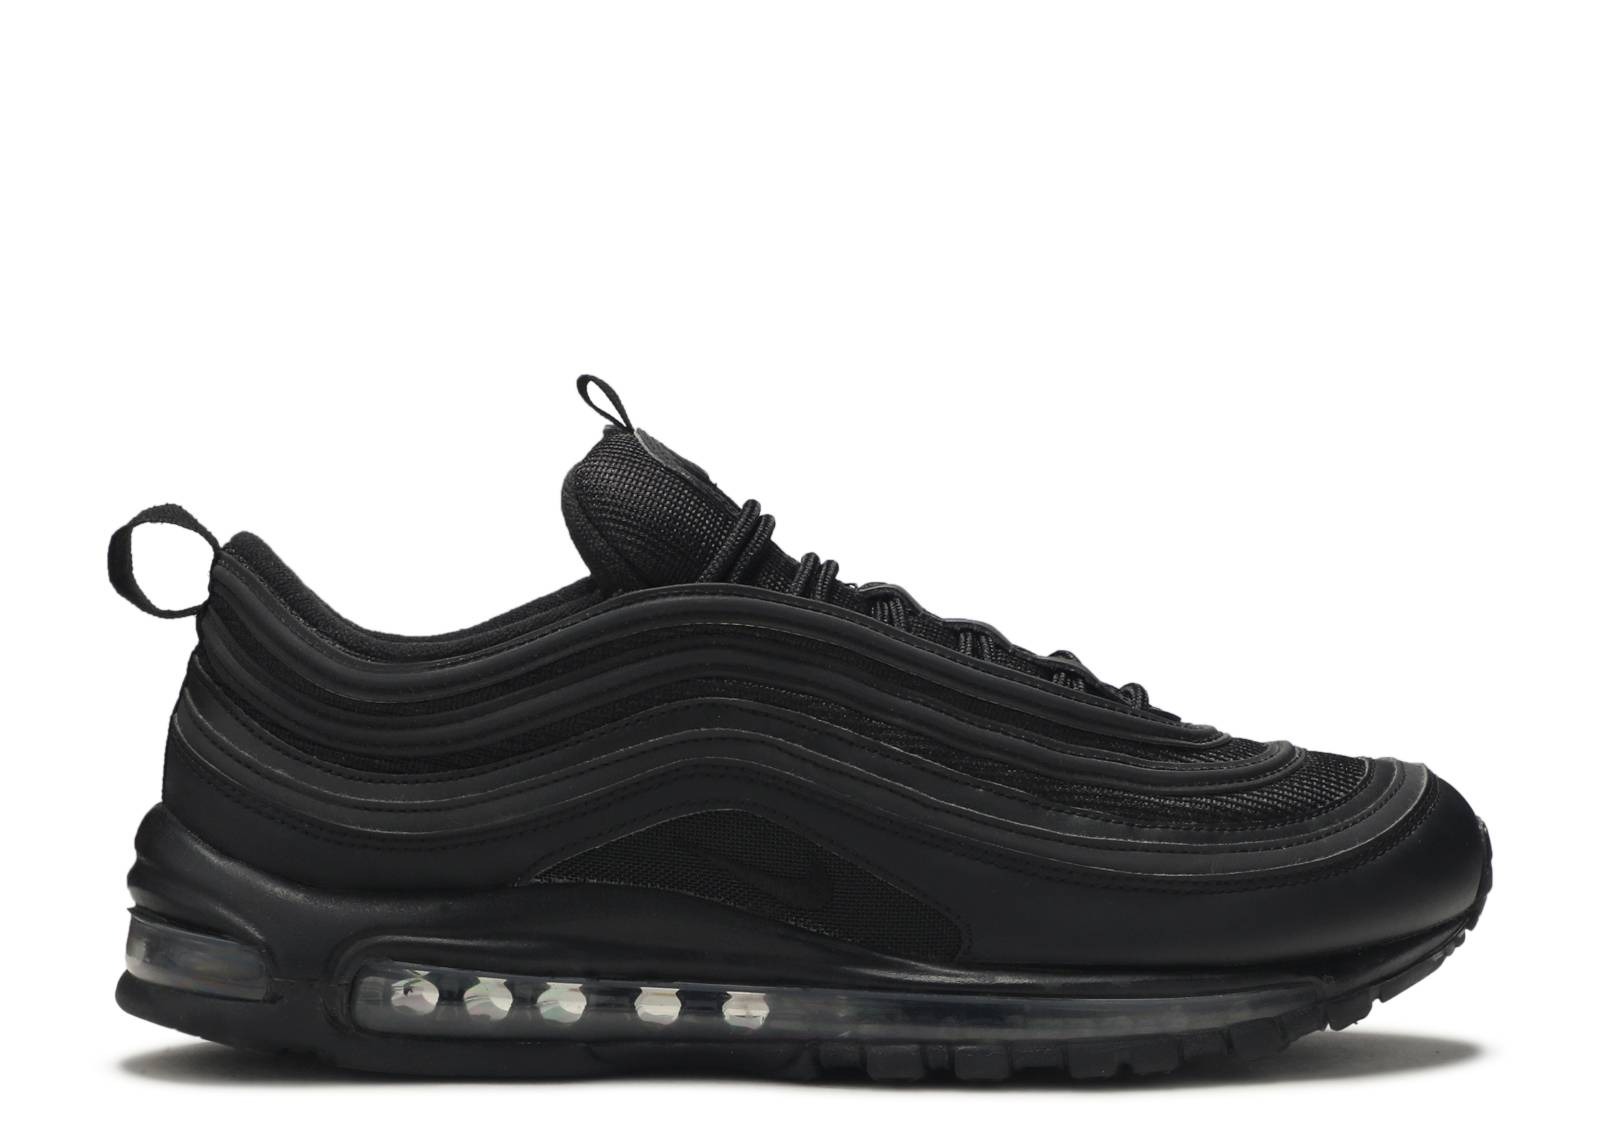 Nike Air Max 97 Og Free Shipping On Orders Air Max 97 Ultra